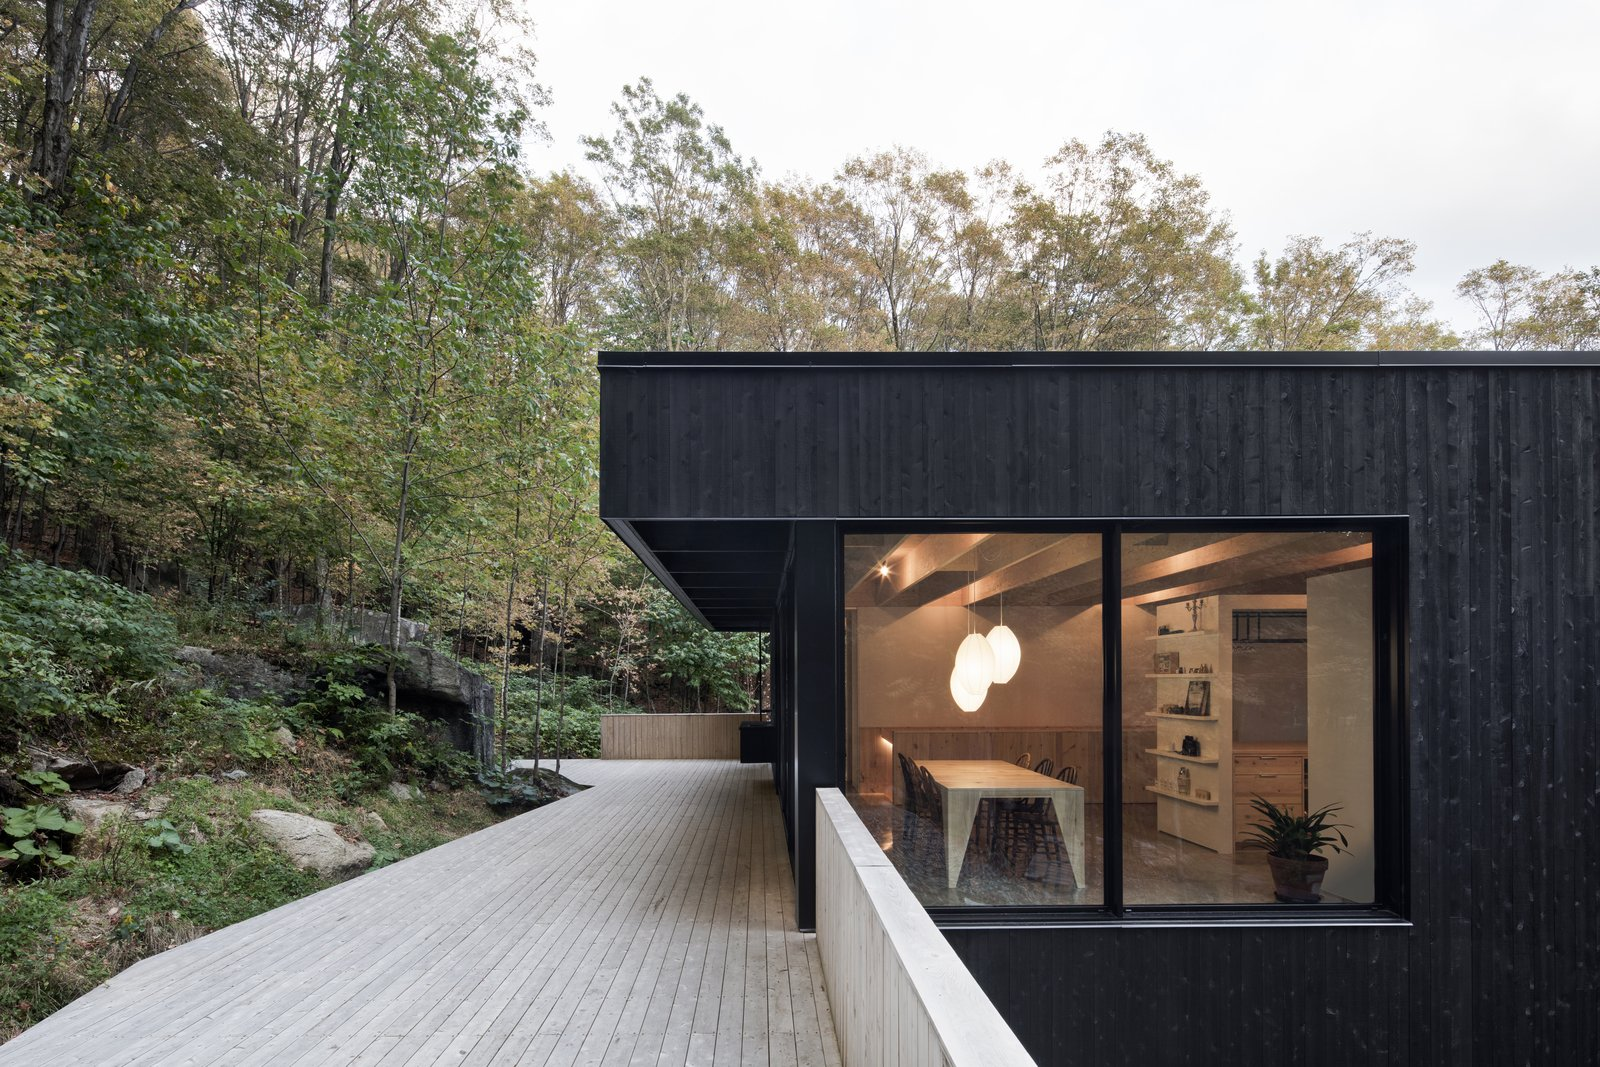 Outdoor, Decking, Trees, Back Yard, Wood, and Walkways The dark-stained exterior cladding stands in contrast to the light wood decking and warm interiors.   Best Outdoor Back Yard Decking Photos from This Wood-Clad Home Is Built Into a Serene Mountain Slope